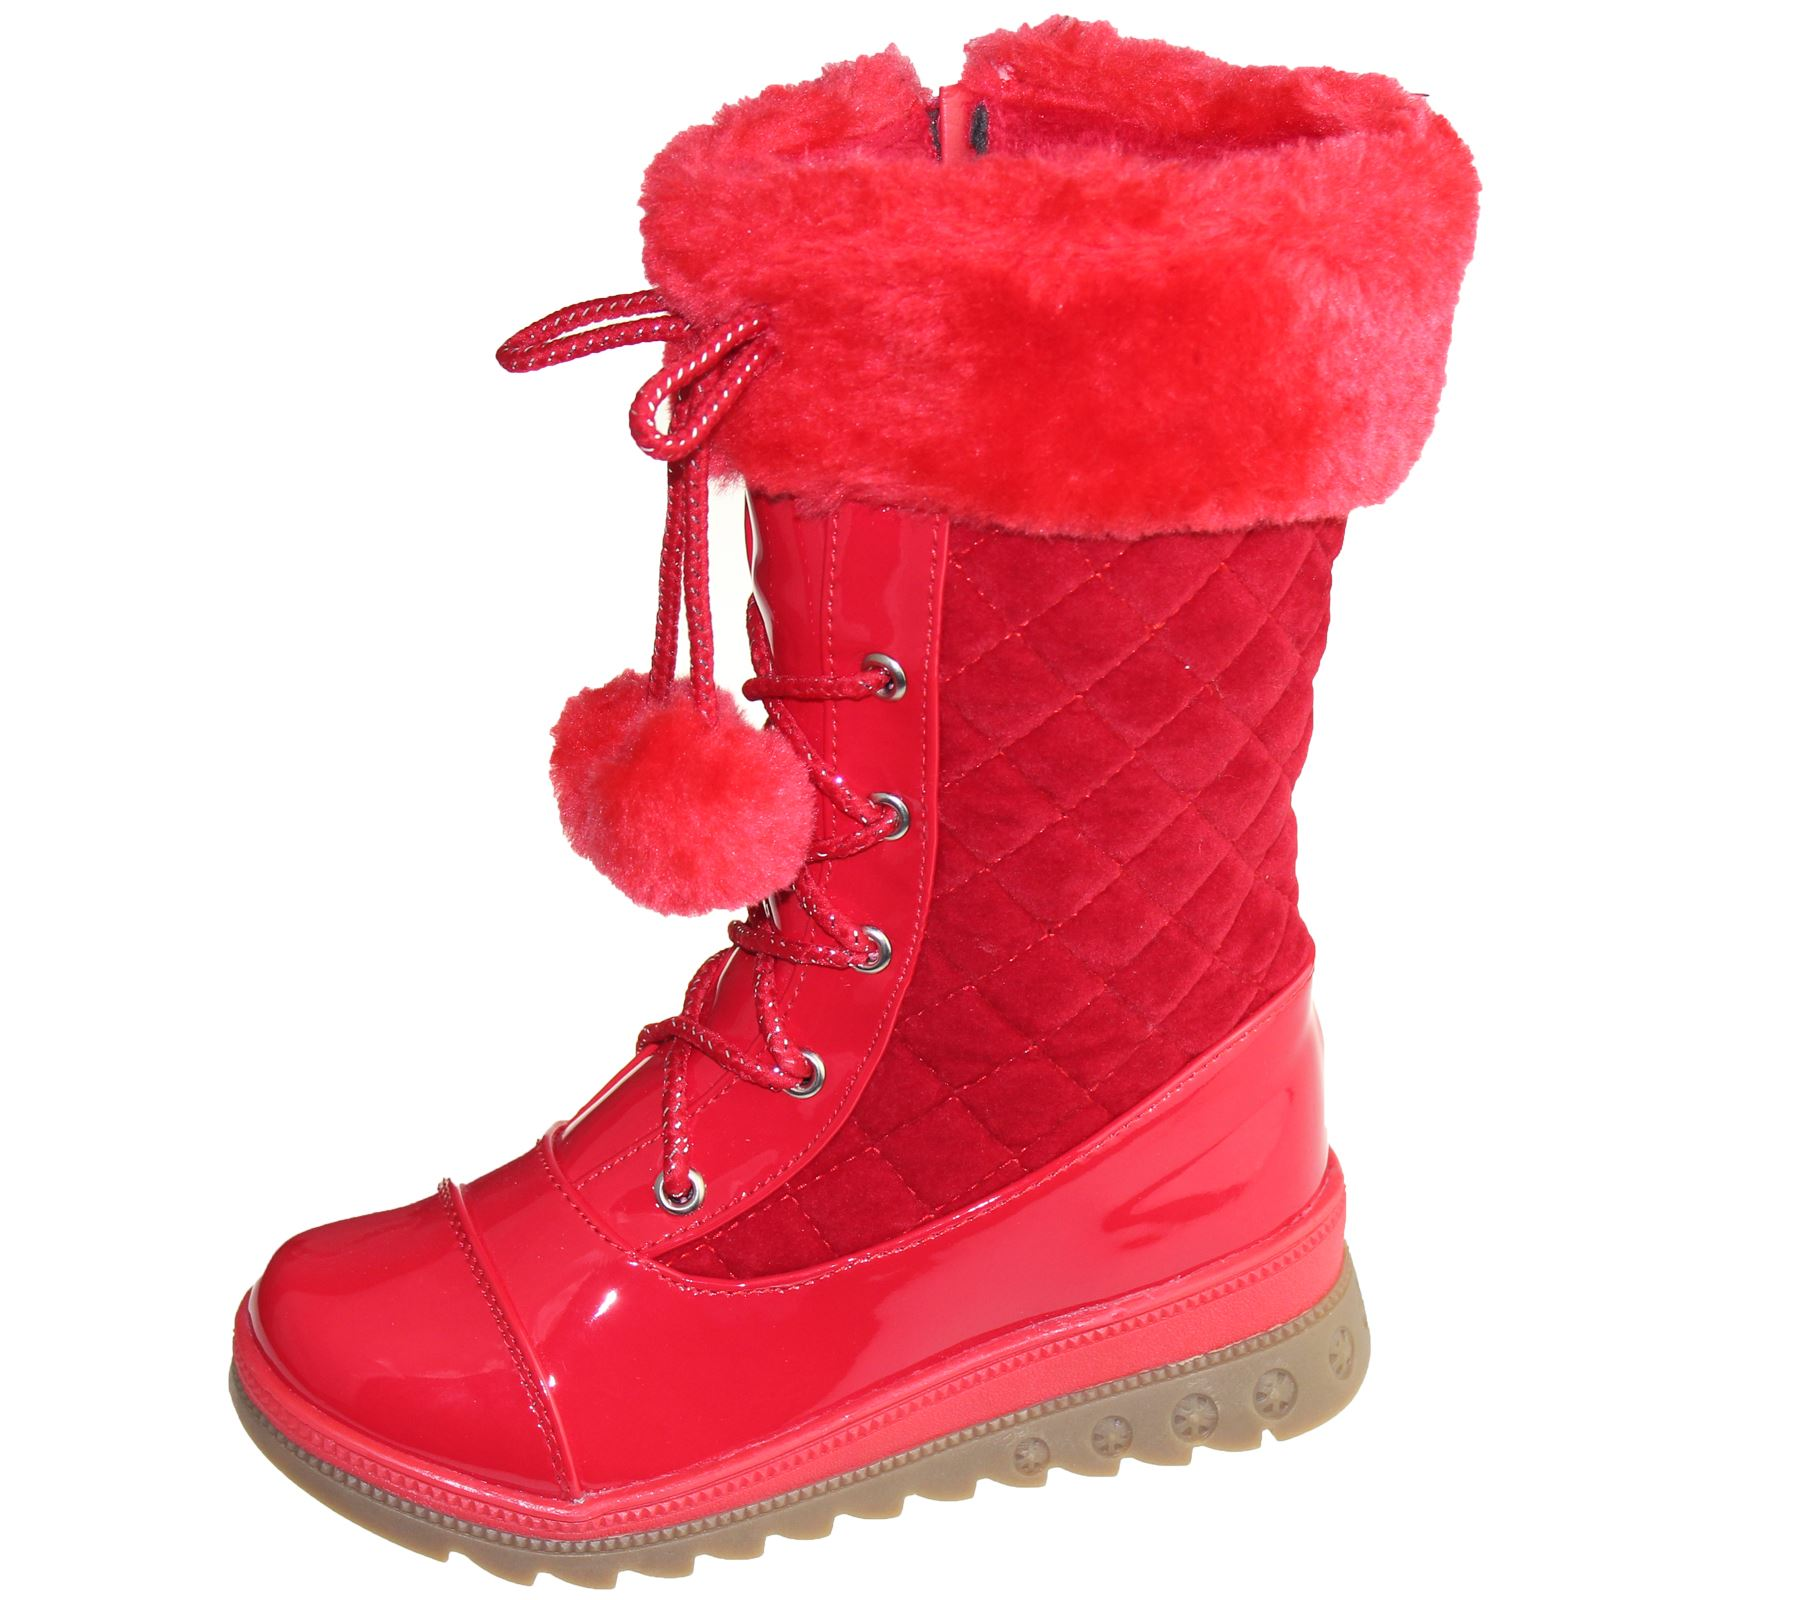 Girls Warm Linned Boots Pom Pom Winter Christmas High Top Qulted Ankle Shoes